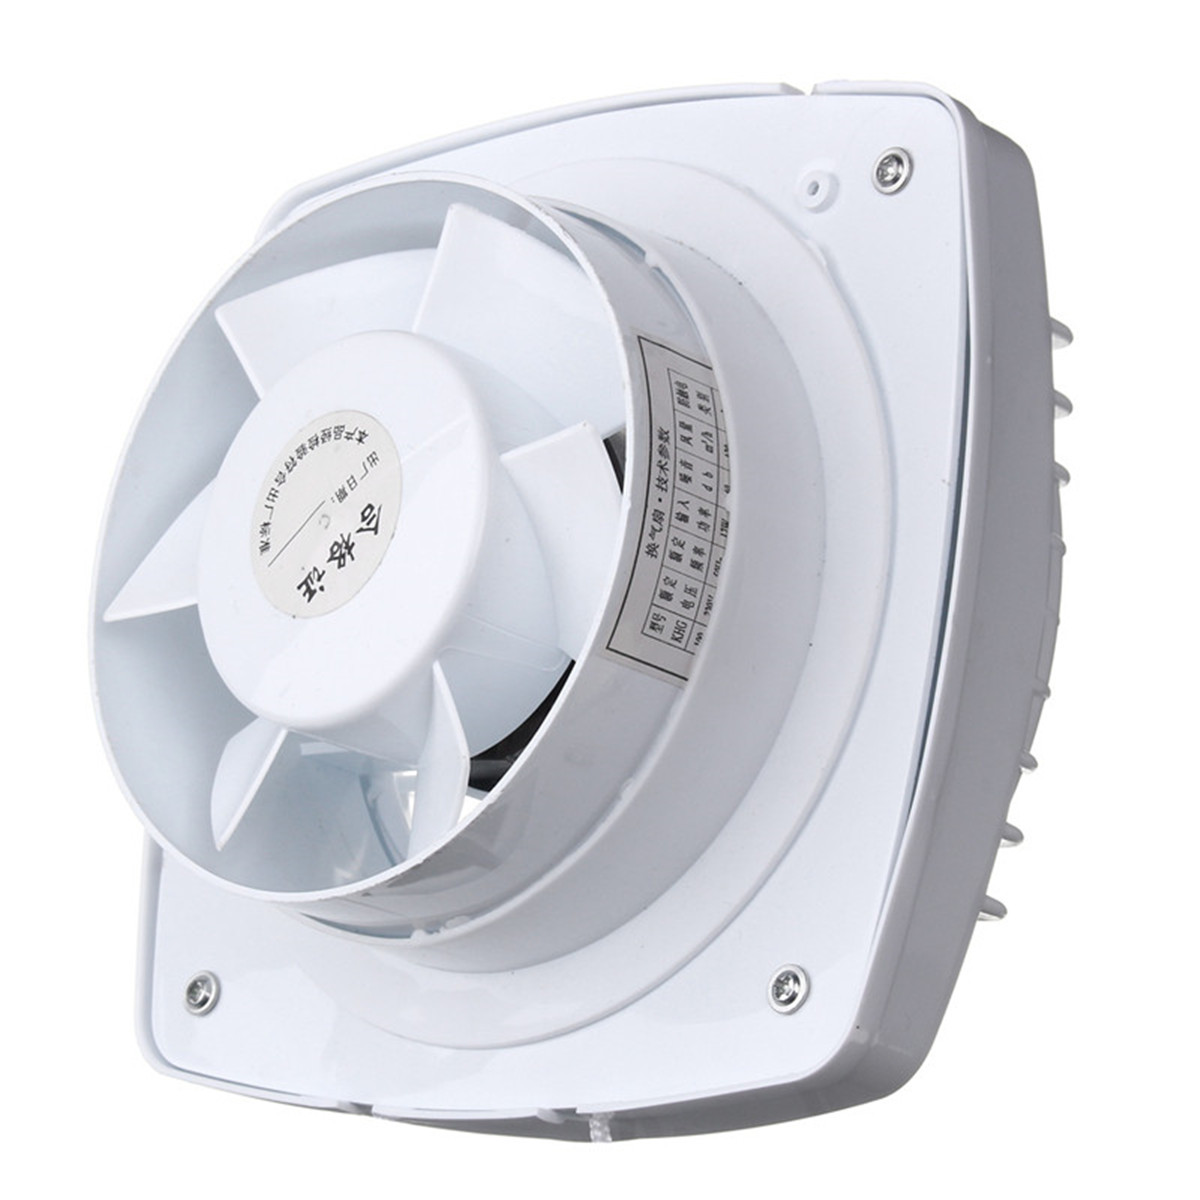 12W 6'' Pull Rope Exhaust Fan Kitchen Bathroom Toilet Small Air Conditioning Appliance Extractor Fan Ventilation Low Noise 220V 5